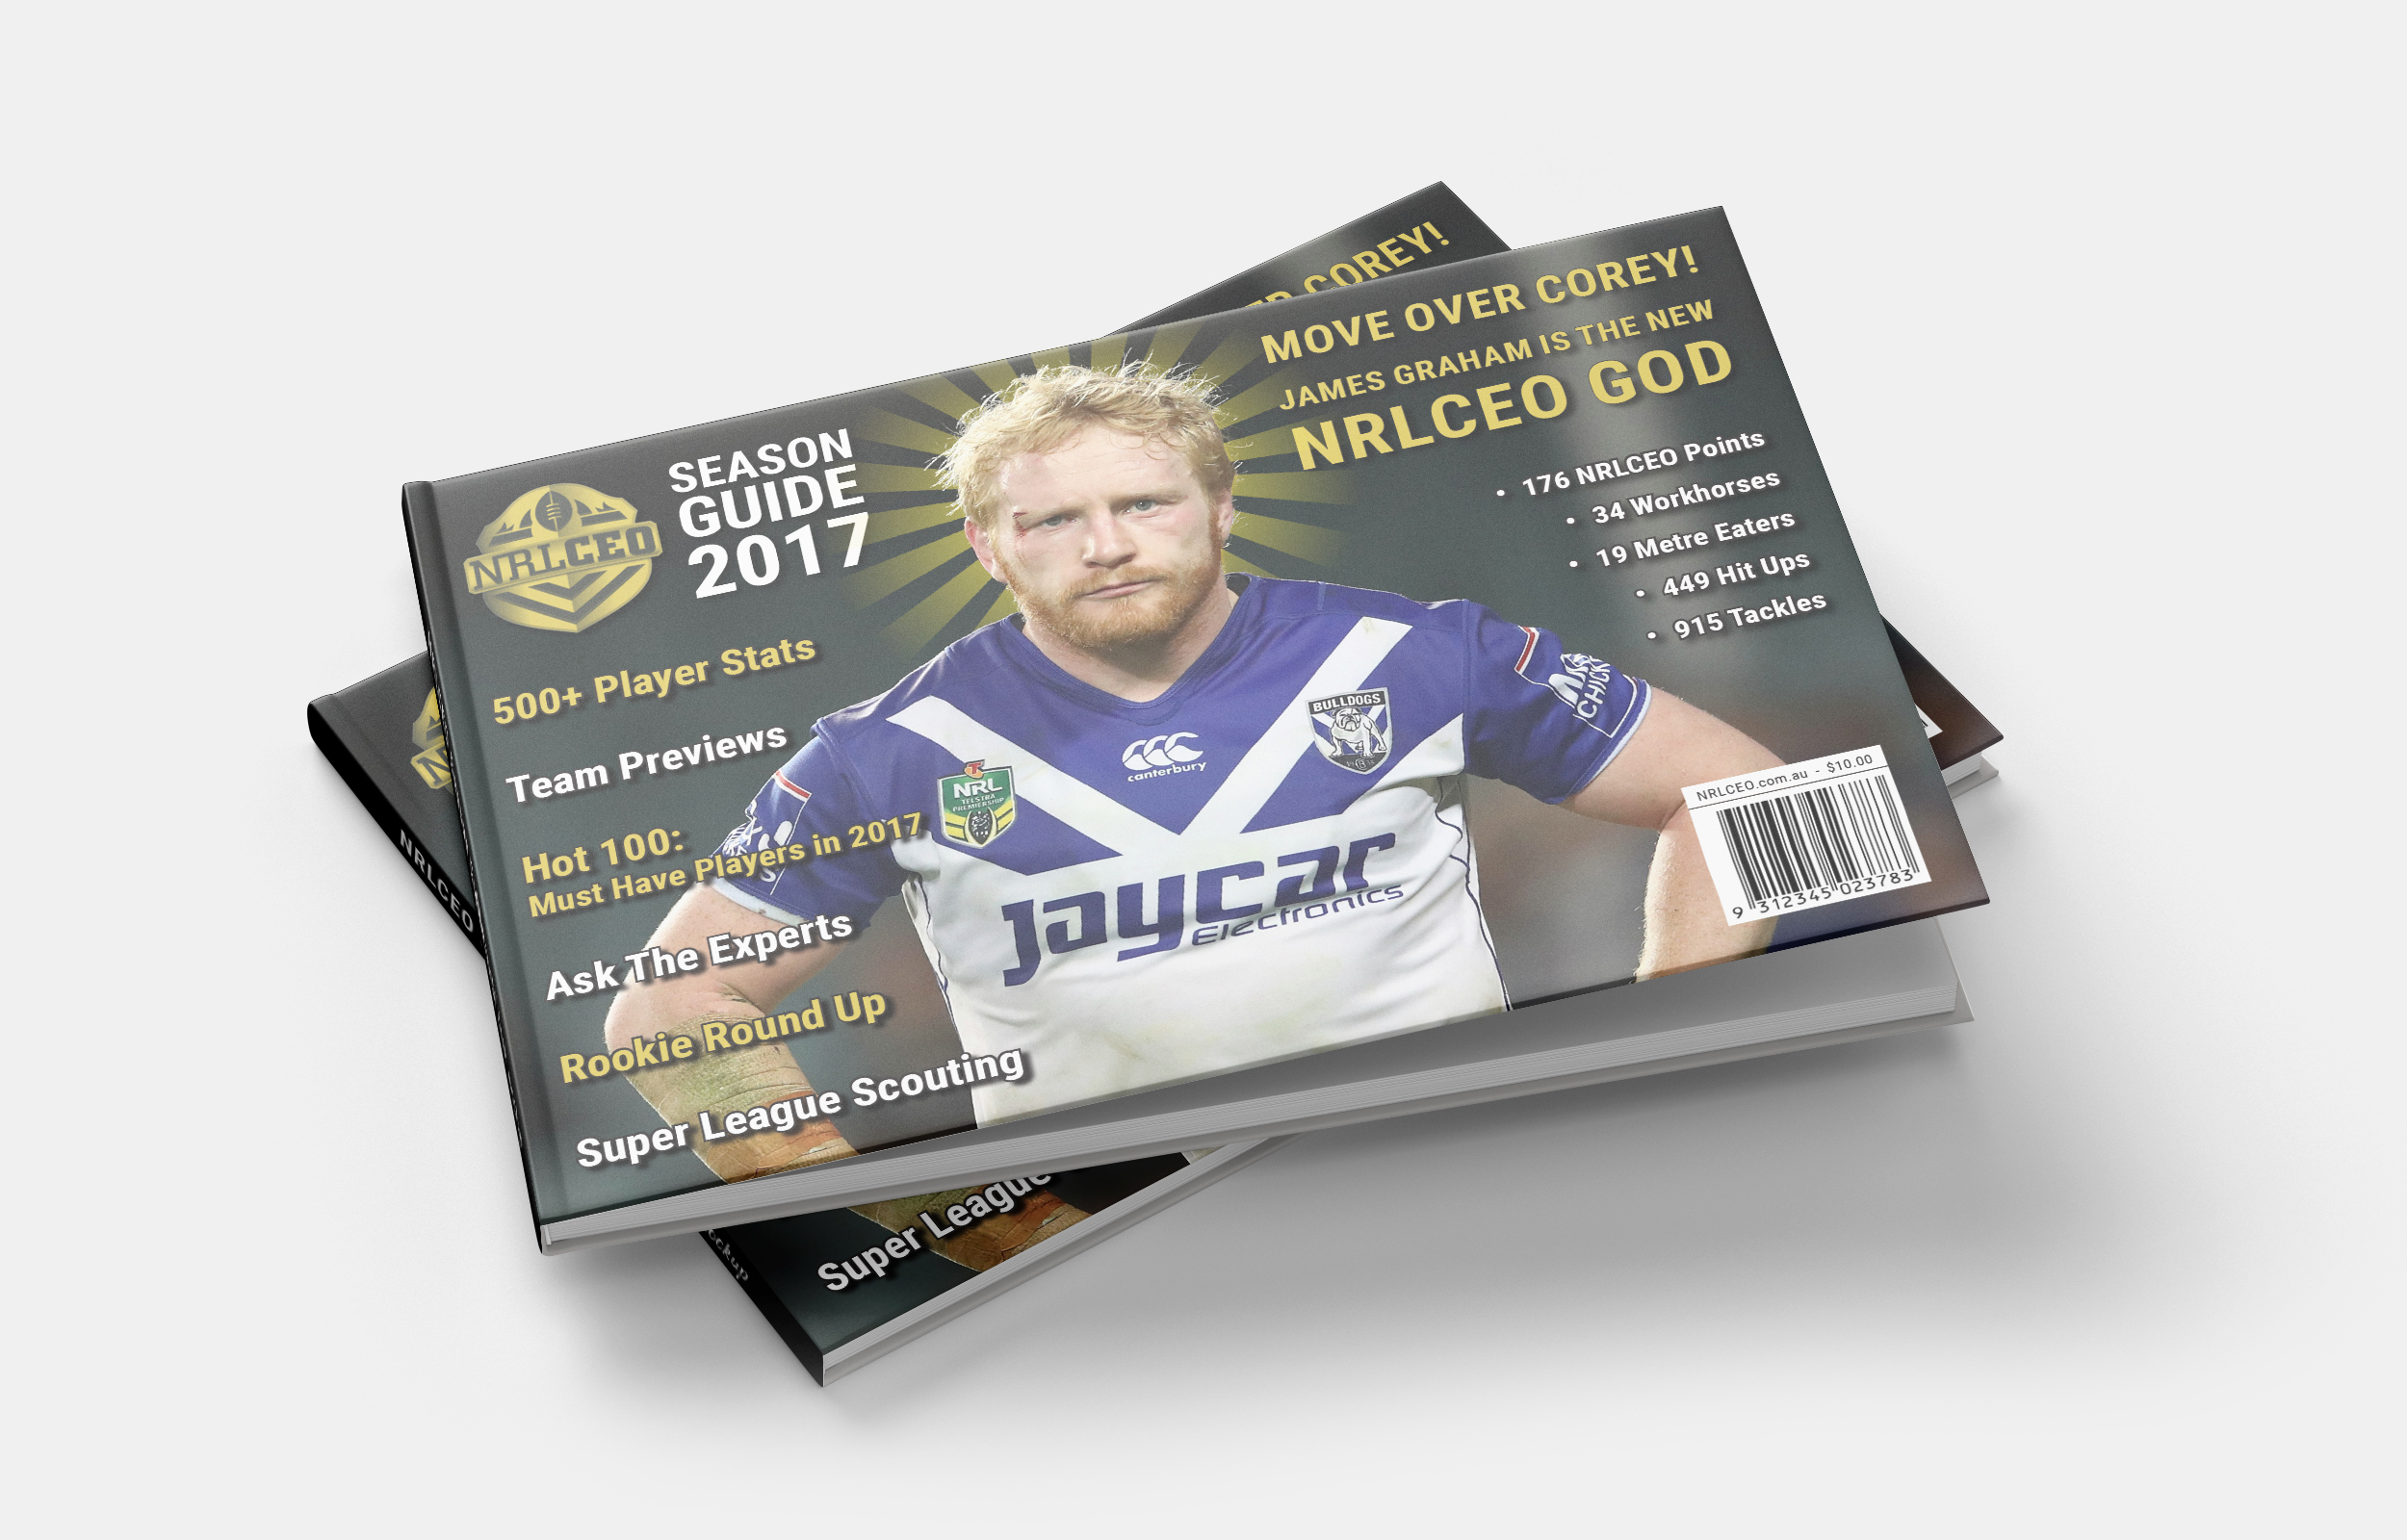 NRLCEO Season Guide 2017